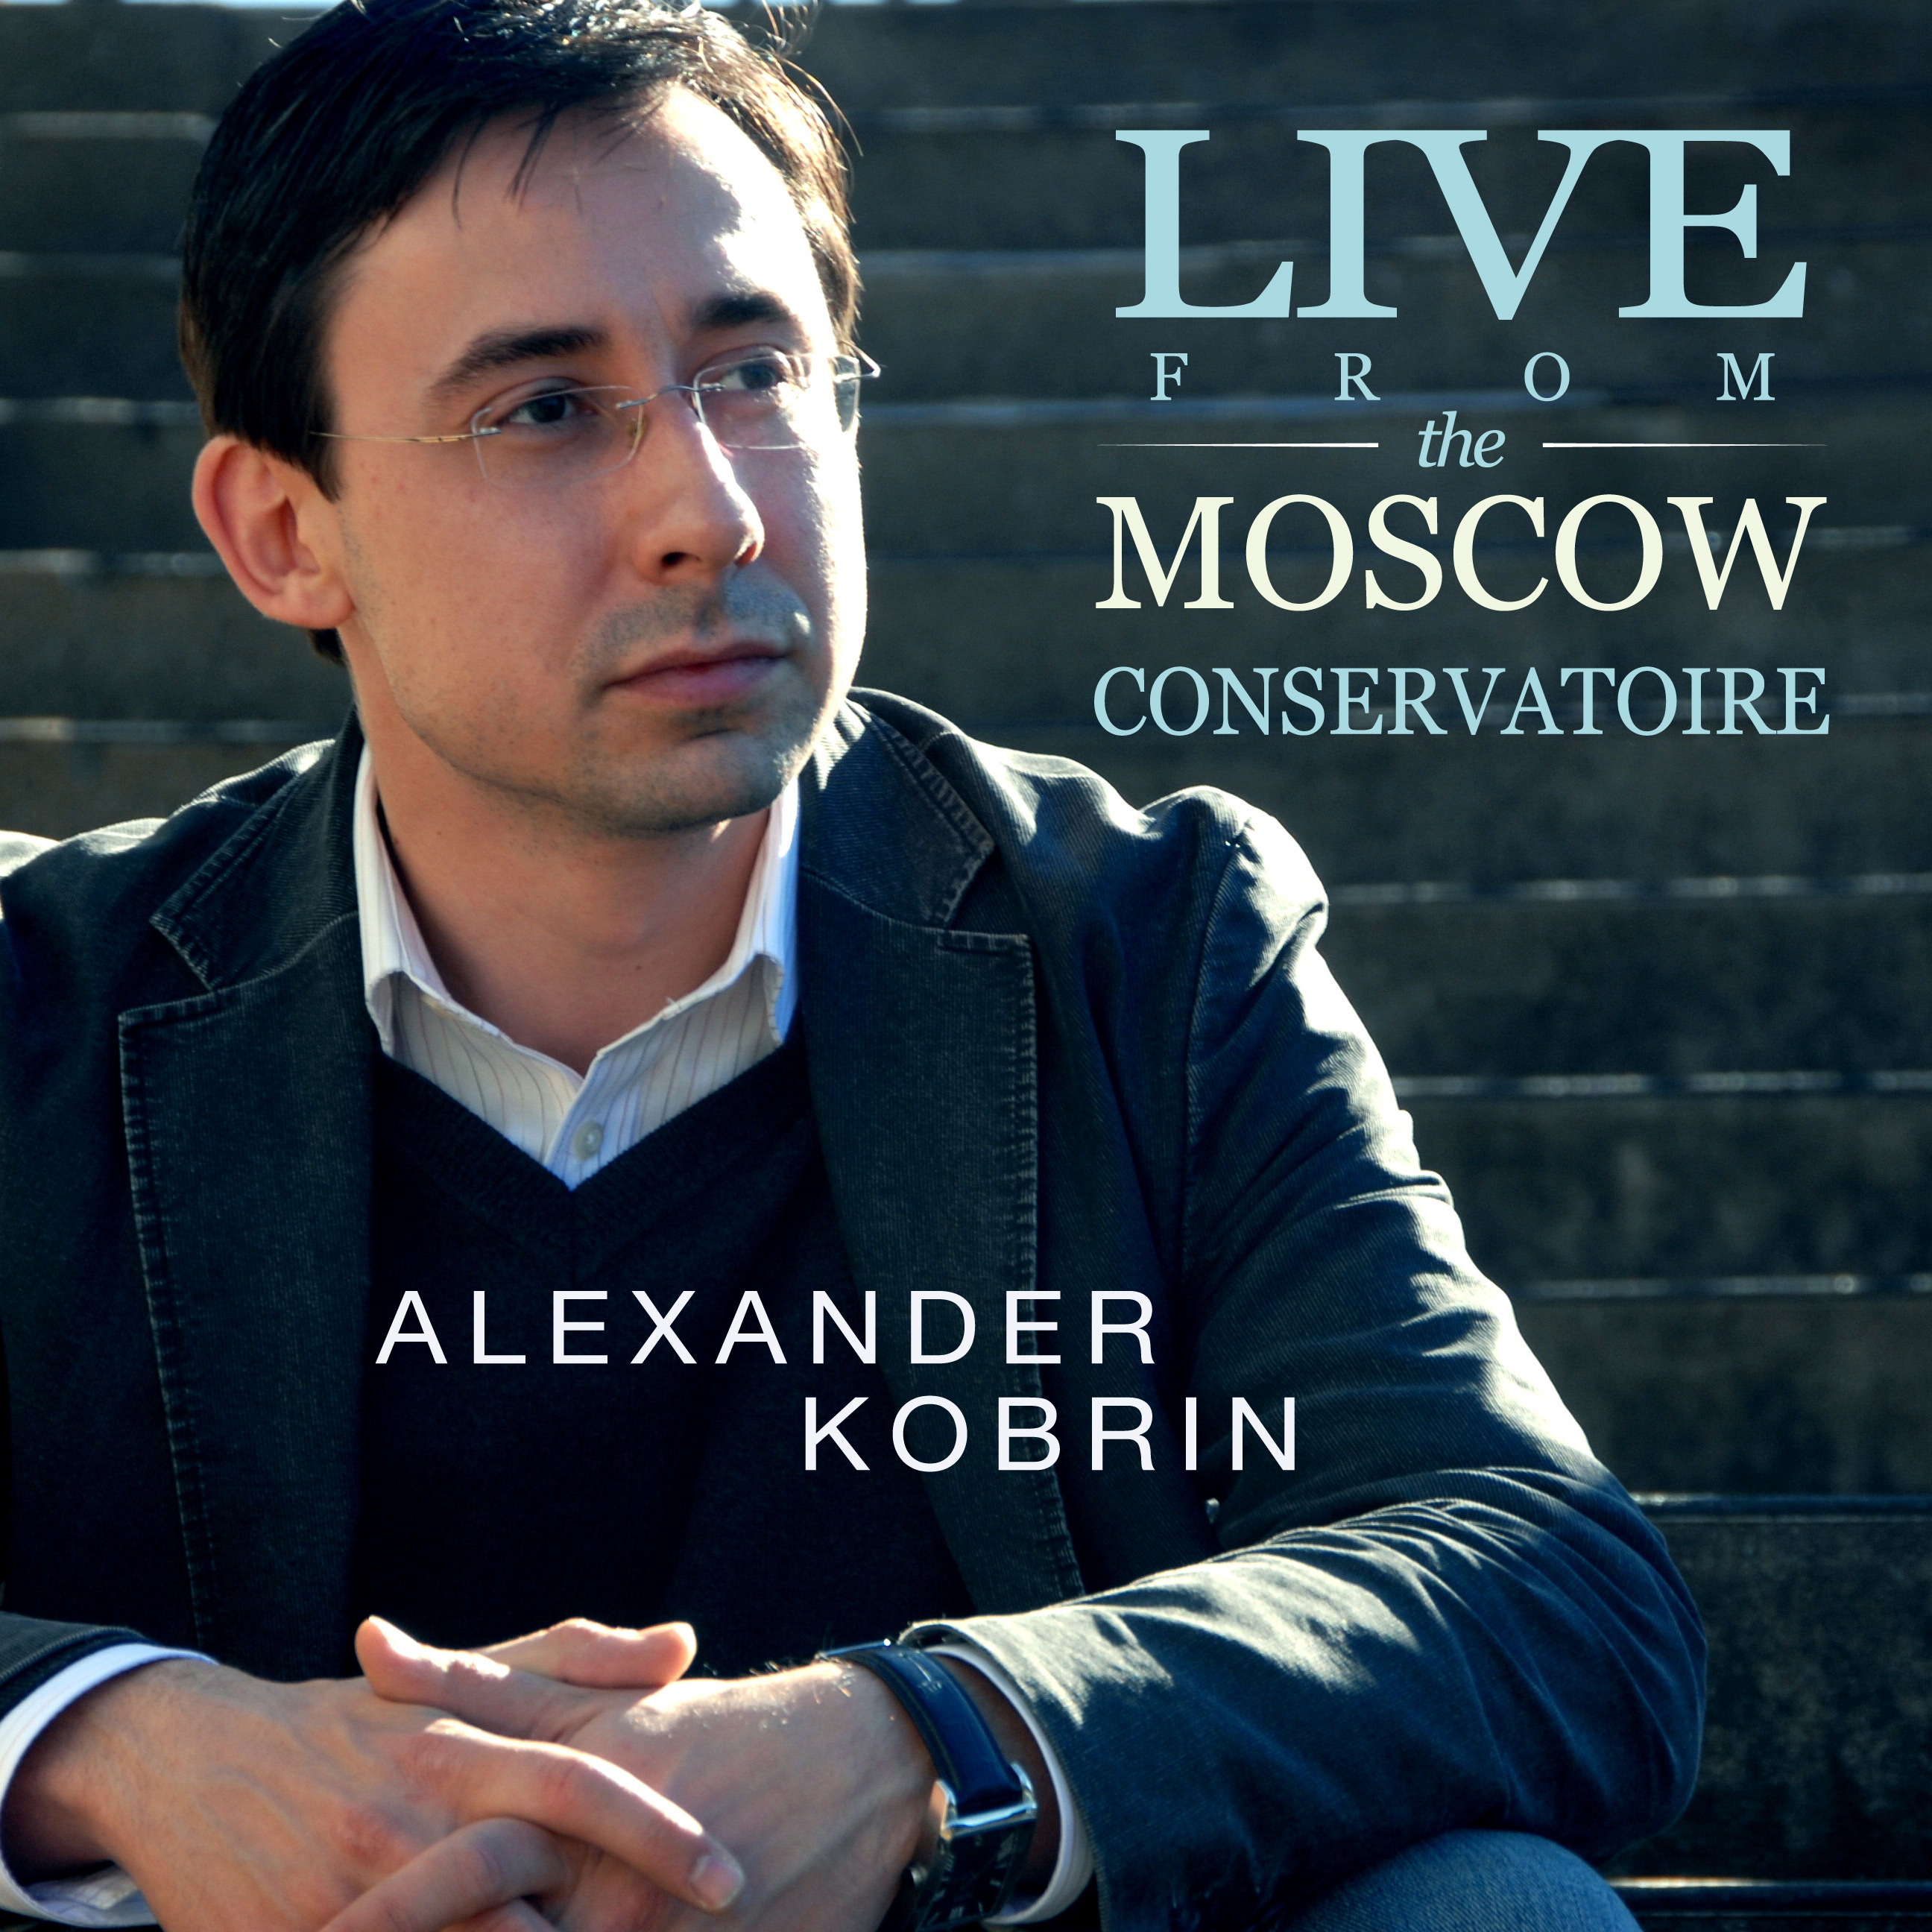 Live from the Moscow Conservatoire